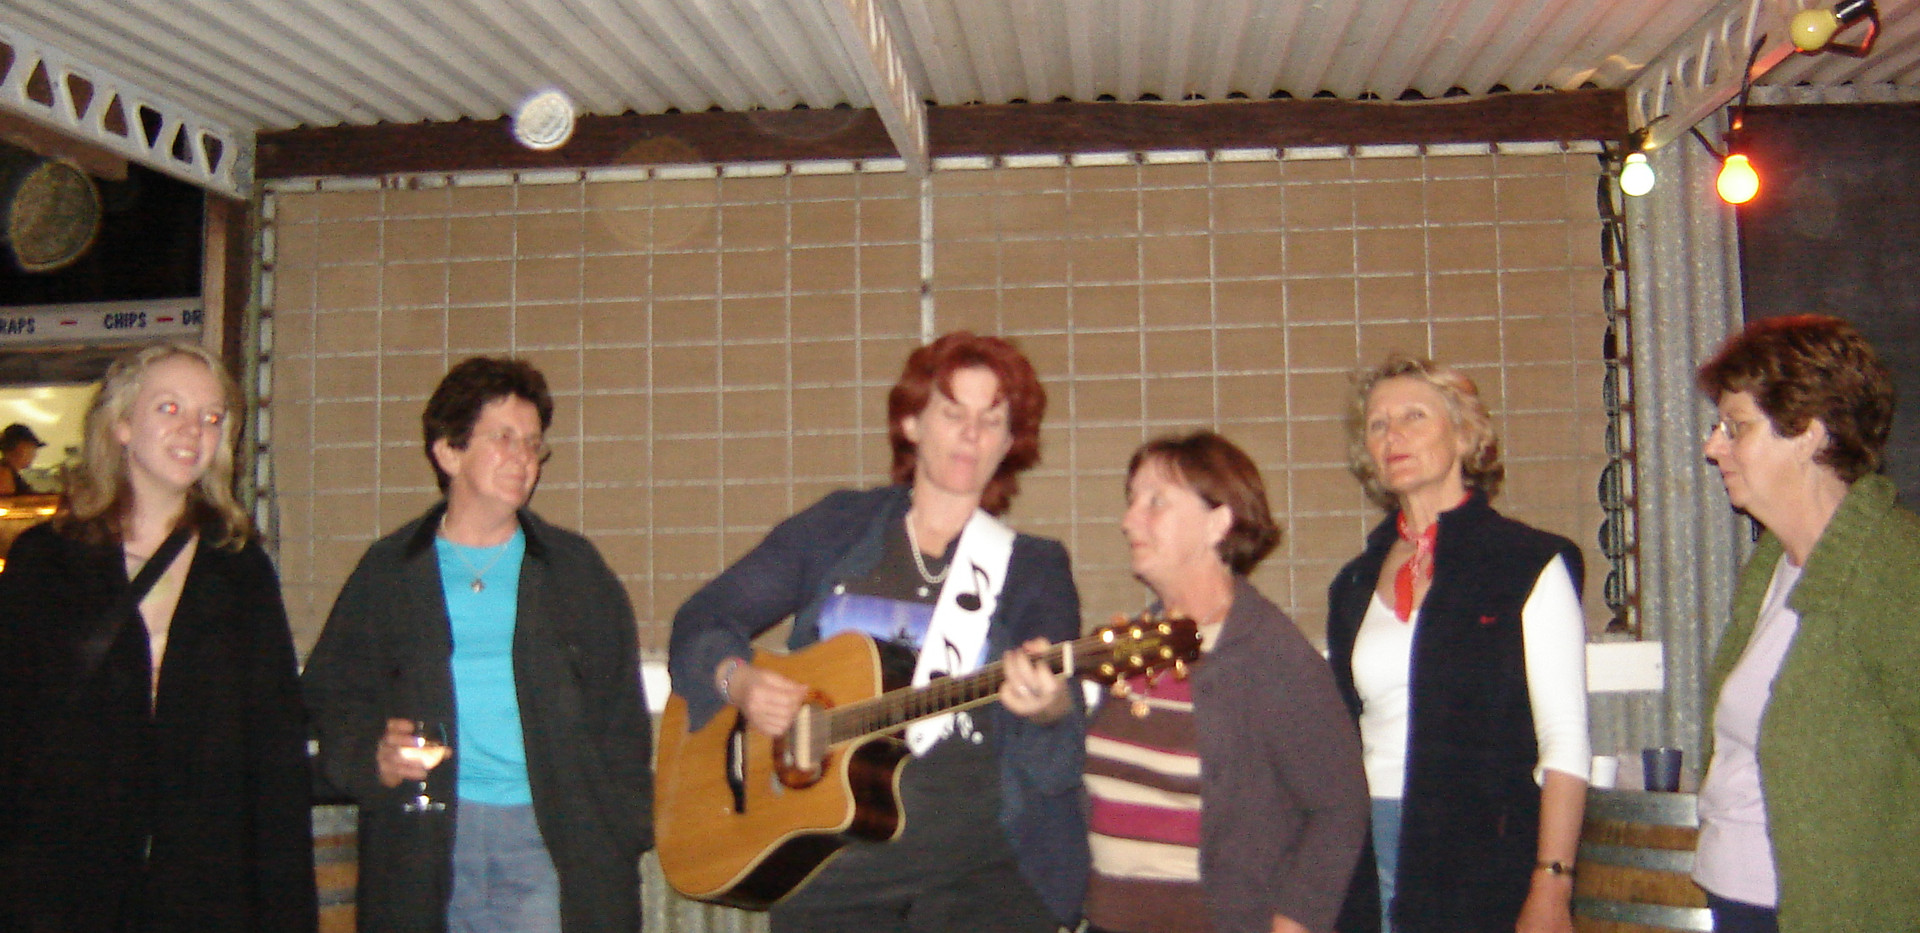 the Quinnies singing group 2006.jpg